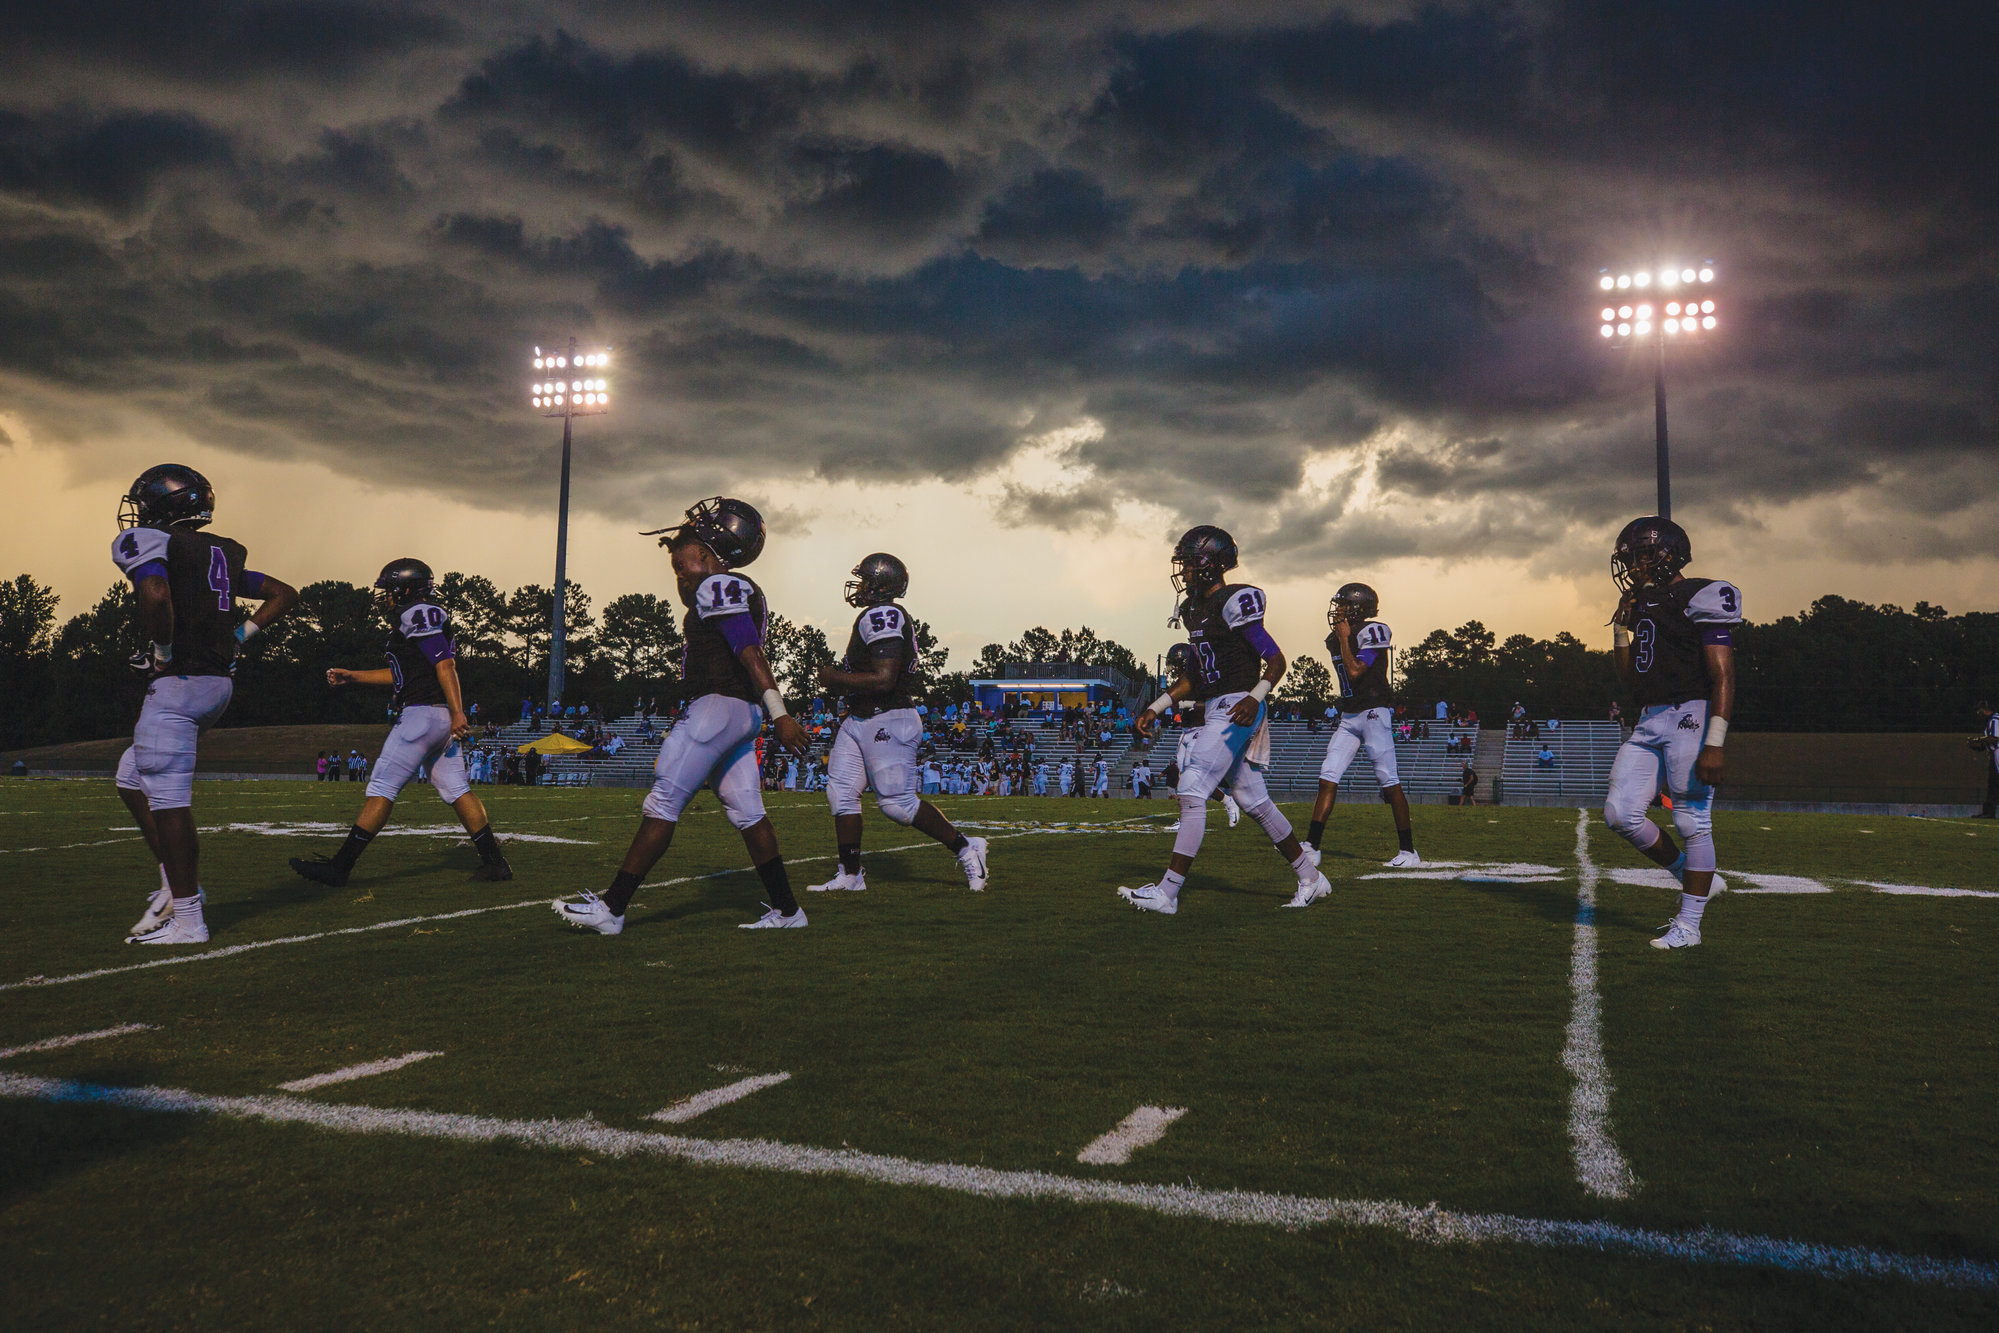 Photo by Micah Green/The Sumter ItemThe Crestwood football team leaves the field as a weather delay forces the end of the Sumter County Jamboree on Friday.